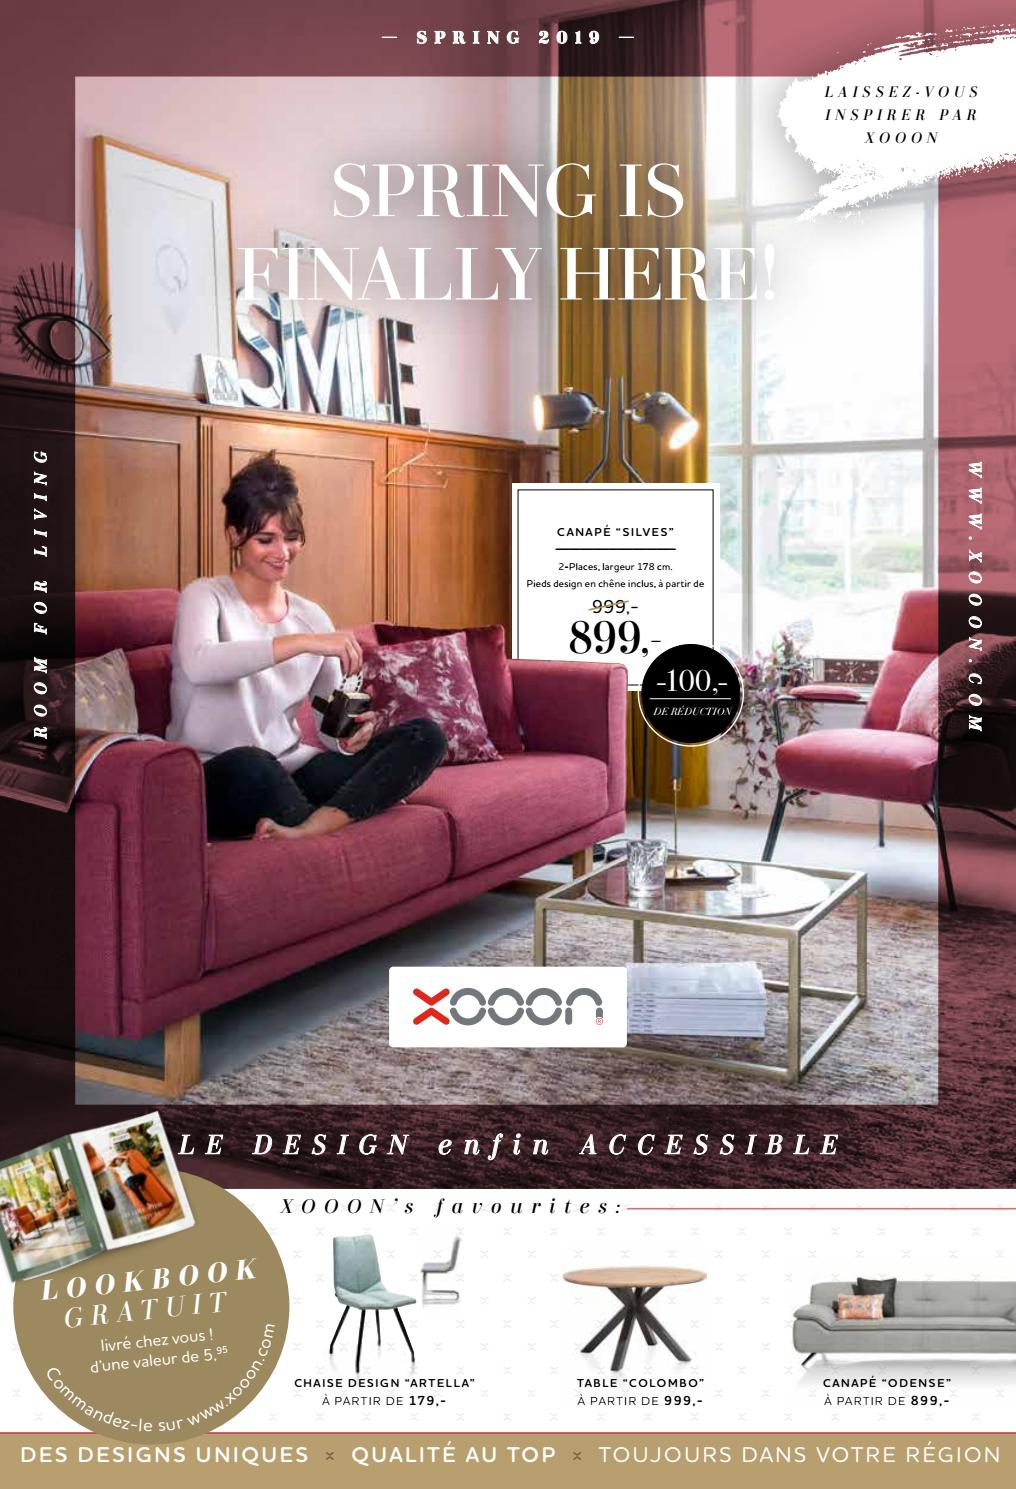 Meubles Momentum Bruxelles Xooon Mars Avril 2019 By Abitare Living Issuu